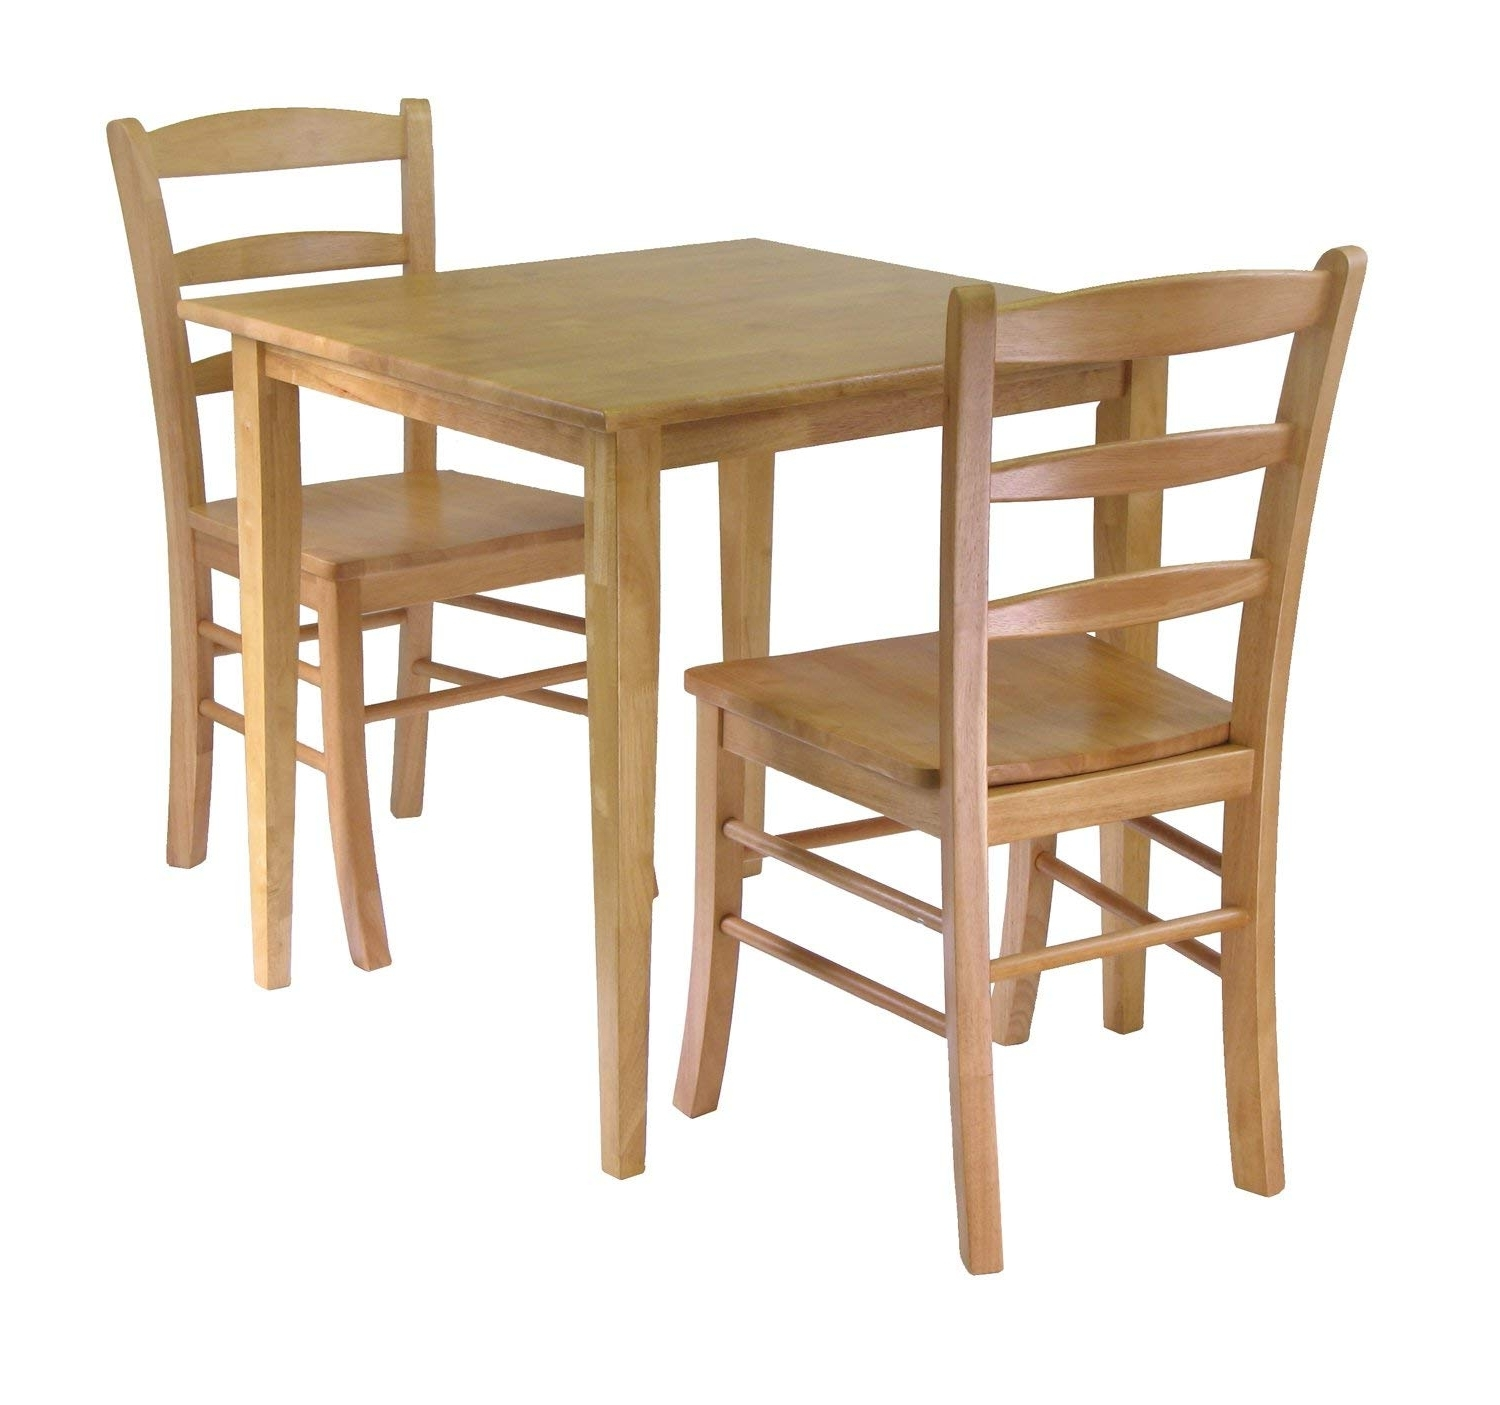 Most Current Small Dining Sets Pertaining To Amazon – Winsome Groveland 3 Piece Wood Dining Set, Light Oak (View 11 of 25)